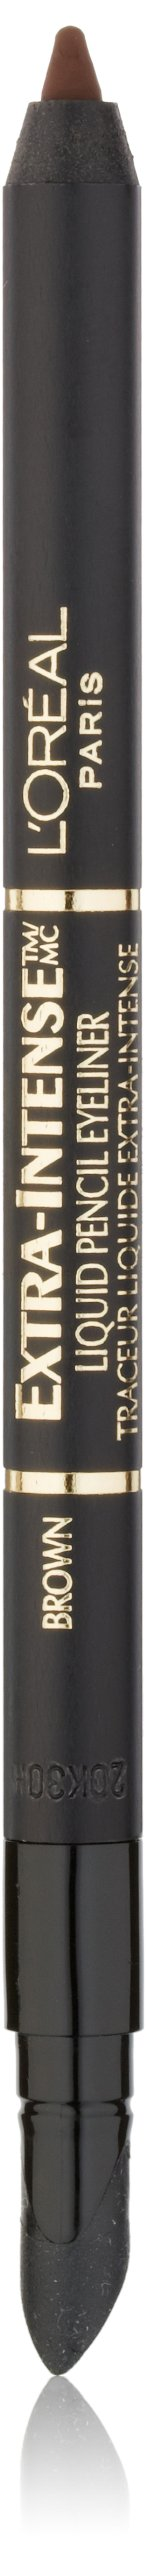 L'Oréal Paris Extra-Intense Pencil Eyeliner, Brown, 0.03 oz.